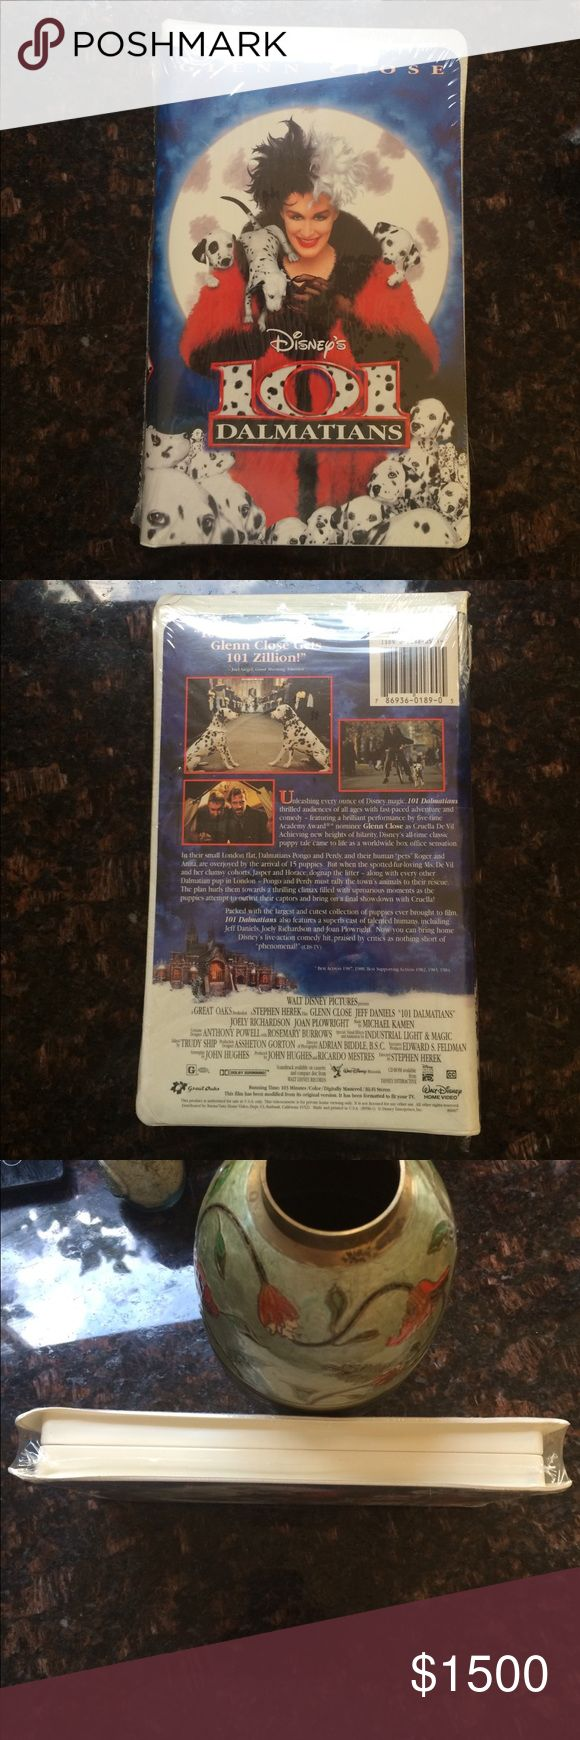 """Disney 101 Dalmatians VHS 101 DALMATIANS WALT DISNEY'S HOME VIDEO COLLECTOR'S """"SEALD"""" 97 VHS TAPE -RARE ,Brand New ,NTSC ,Animated ,Live -Action , Collector's Edition Walt Disney's Other"""